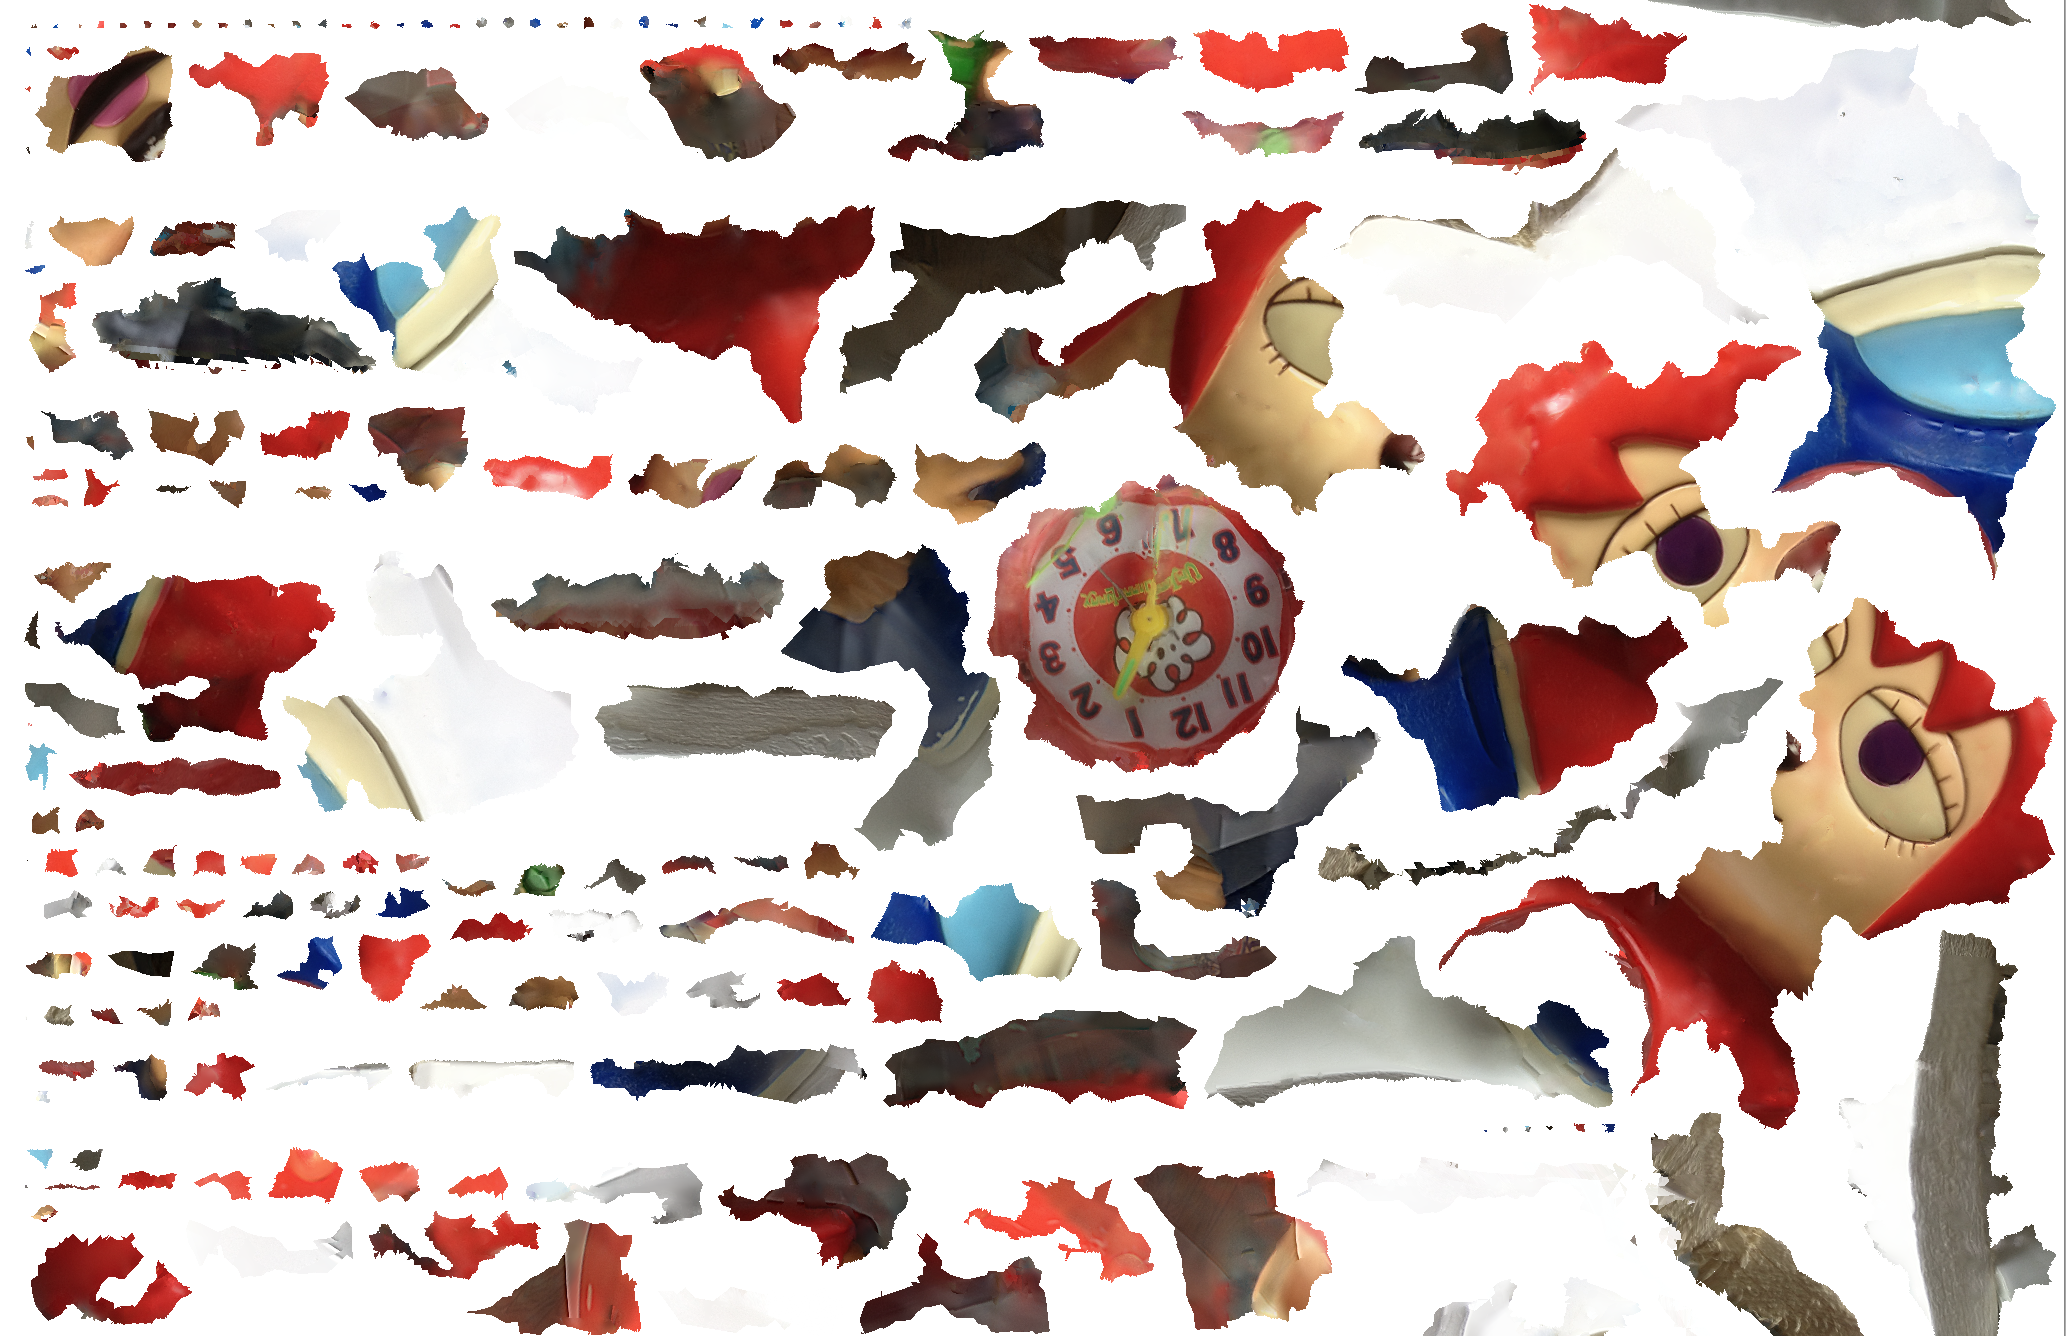 excerpted portion of a PhotoScan export by Yuki Hata -rikaaa.org